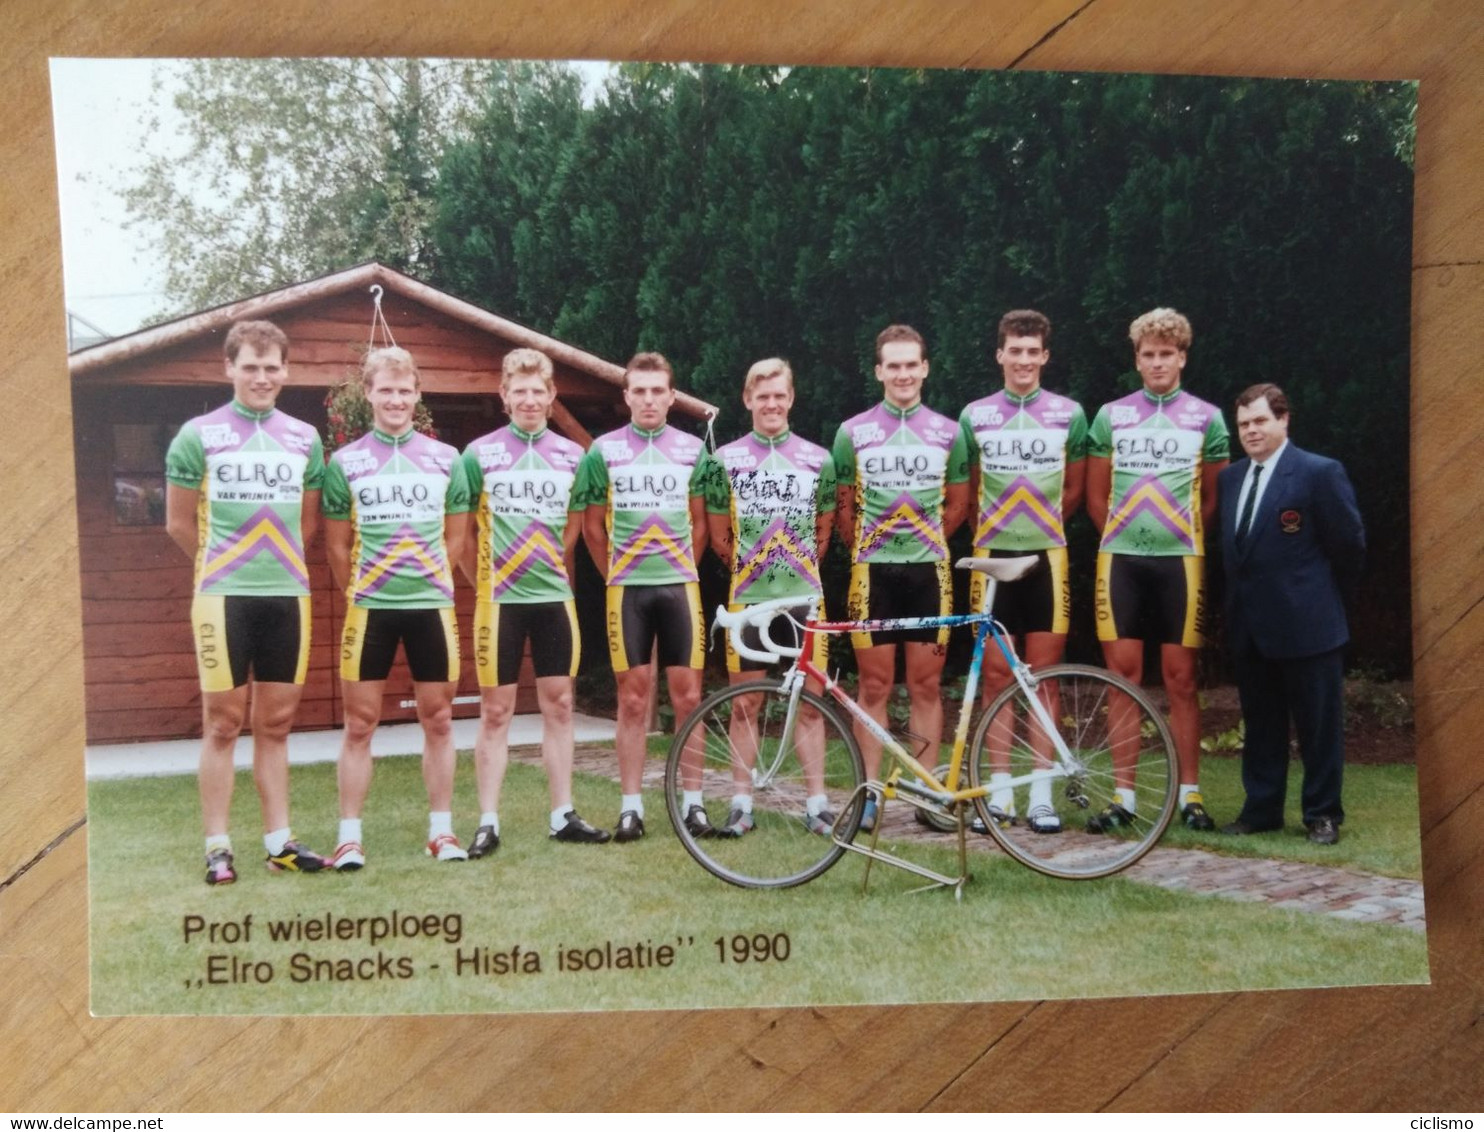 Cyclisme - Carte Photo Publicitaire ELROHISFA TÖNISSTEINER 1991 : Le Groupe - Cycling